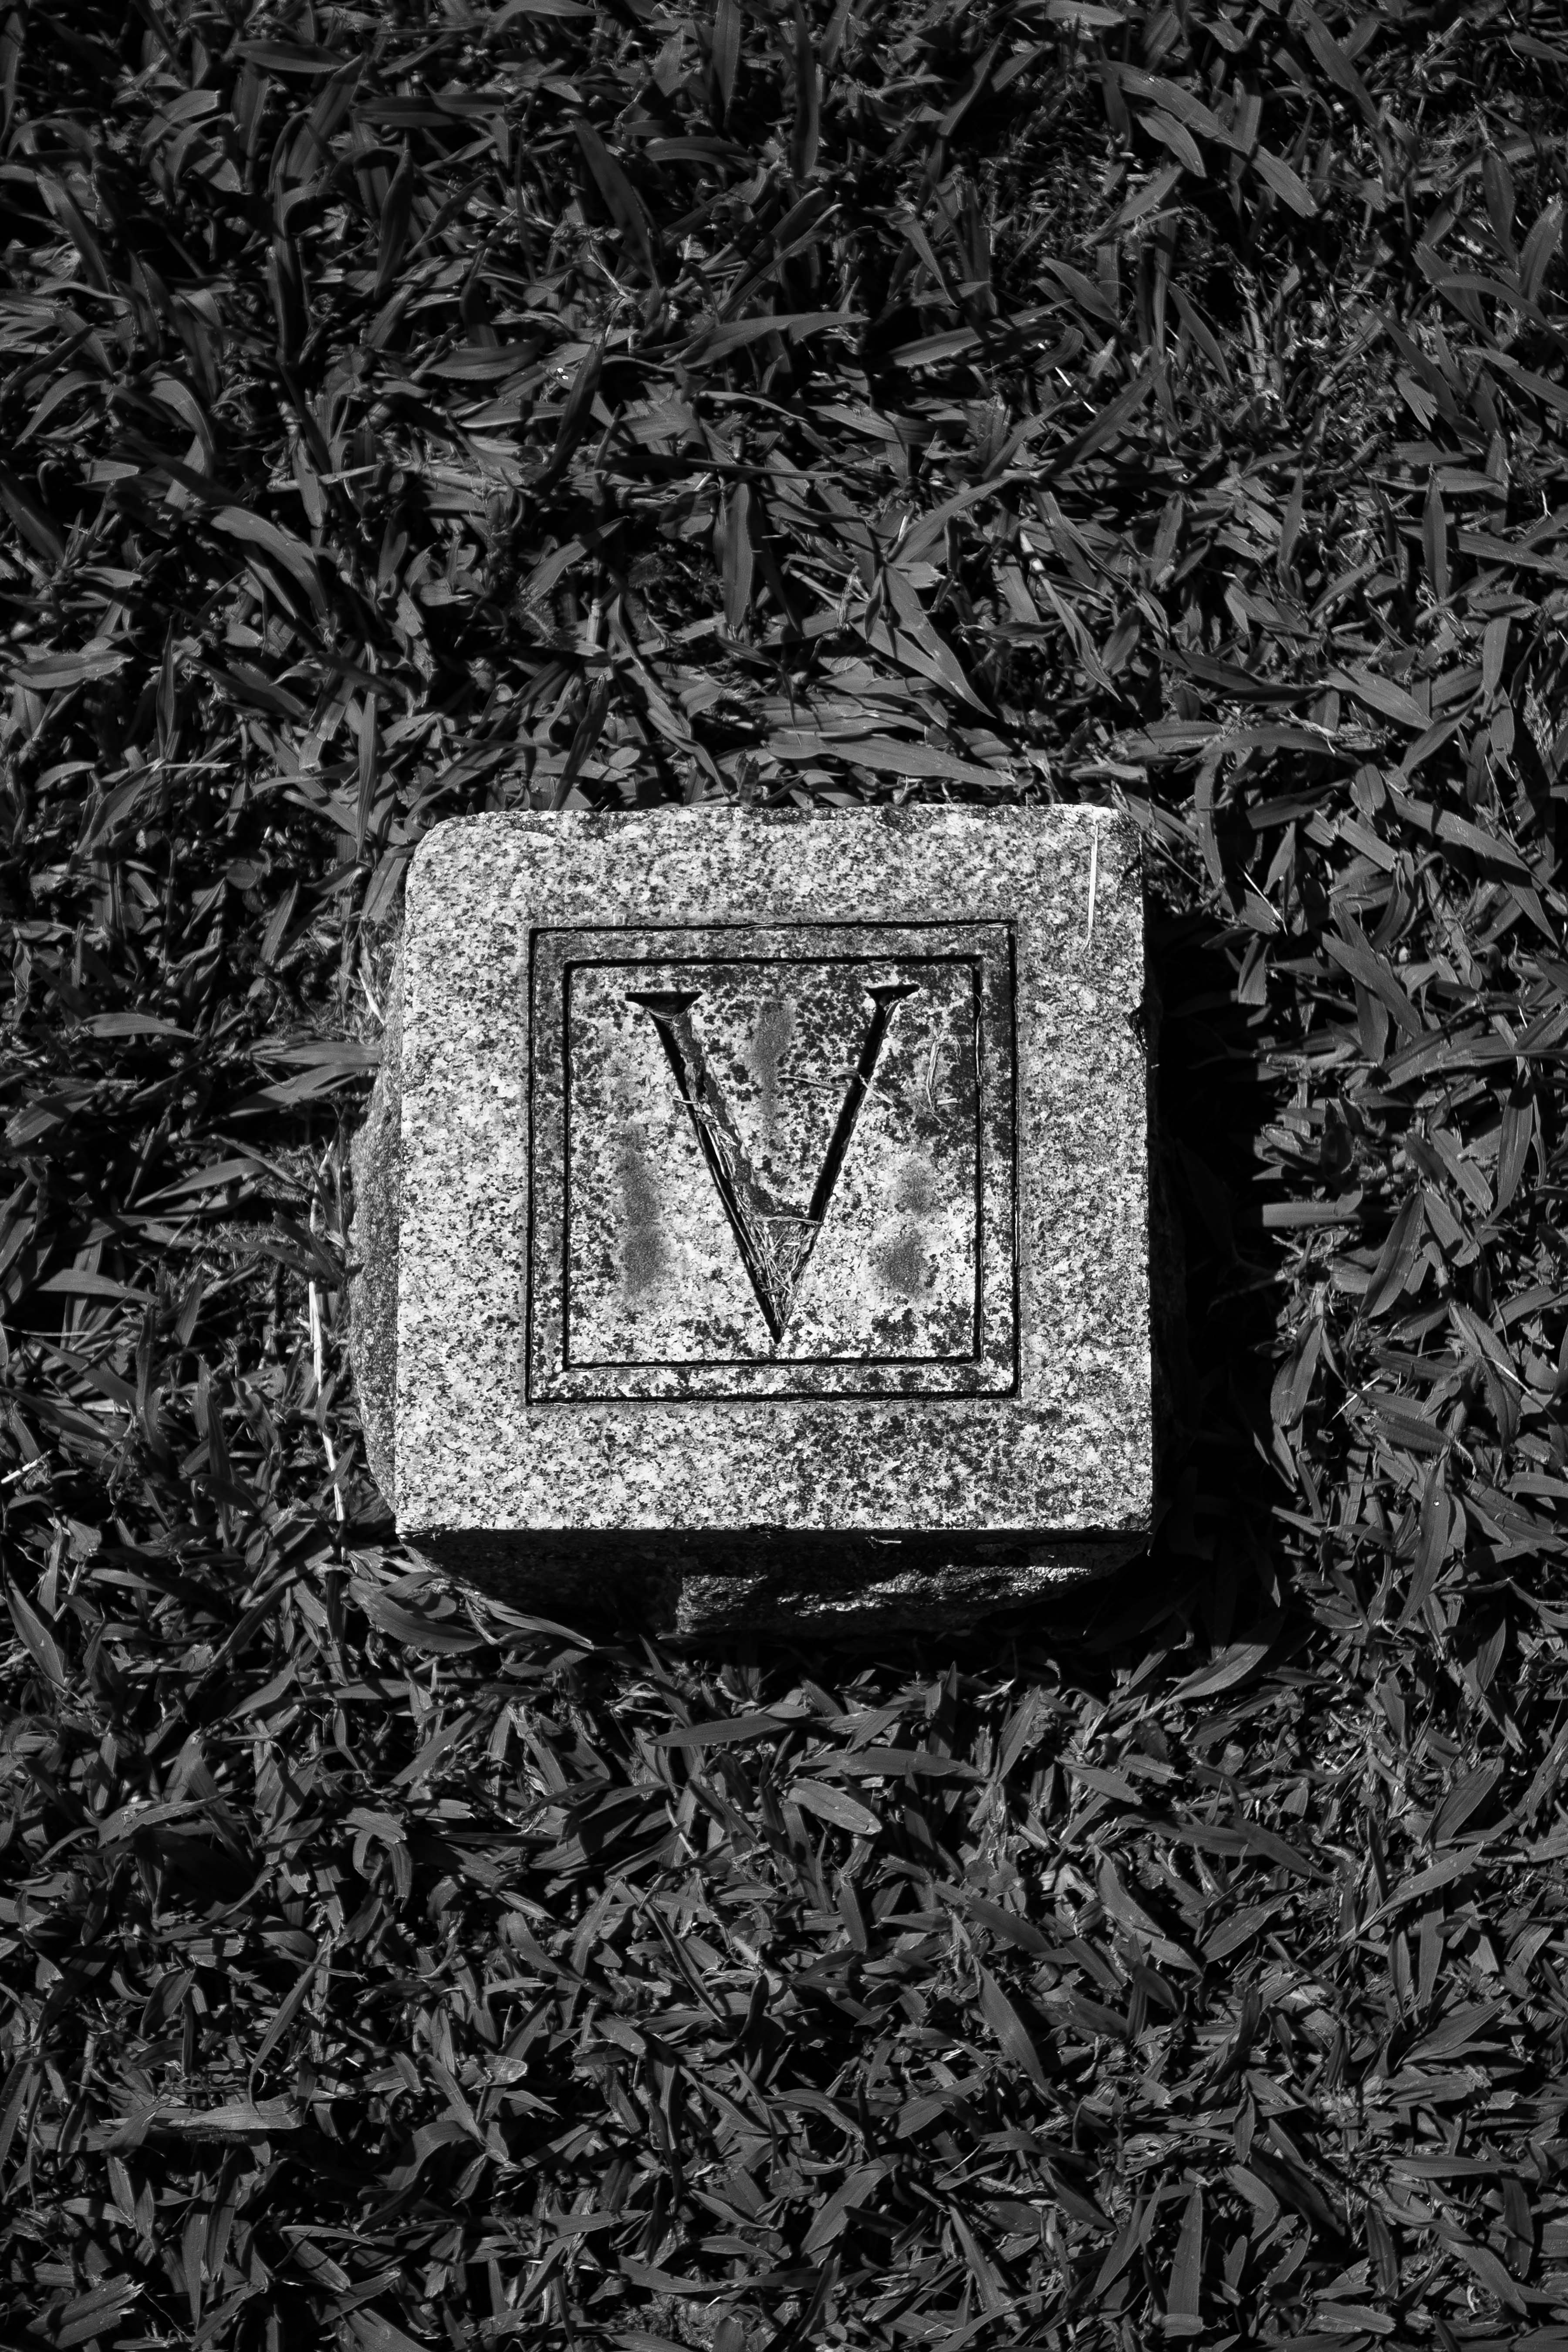 Brought to you by the Letter V